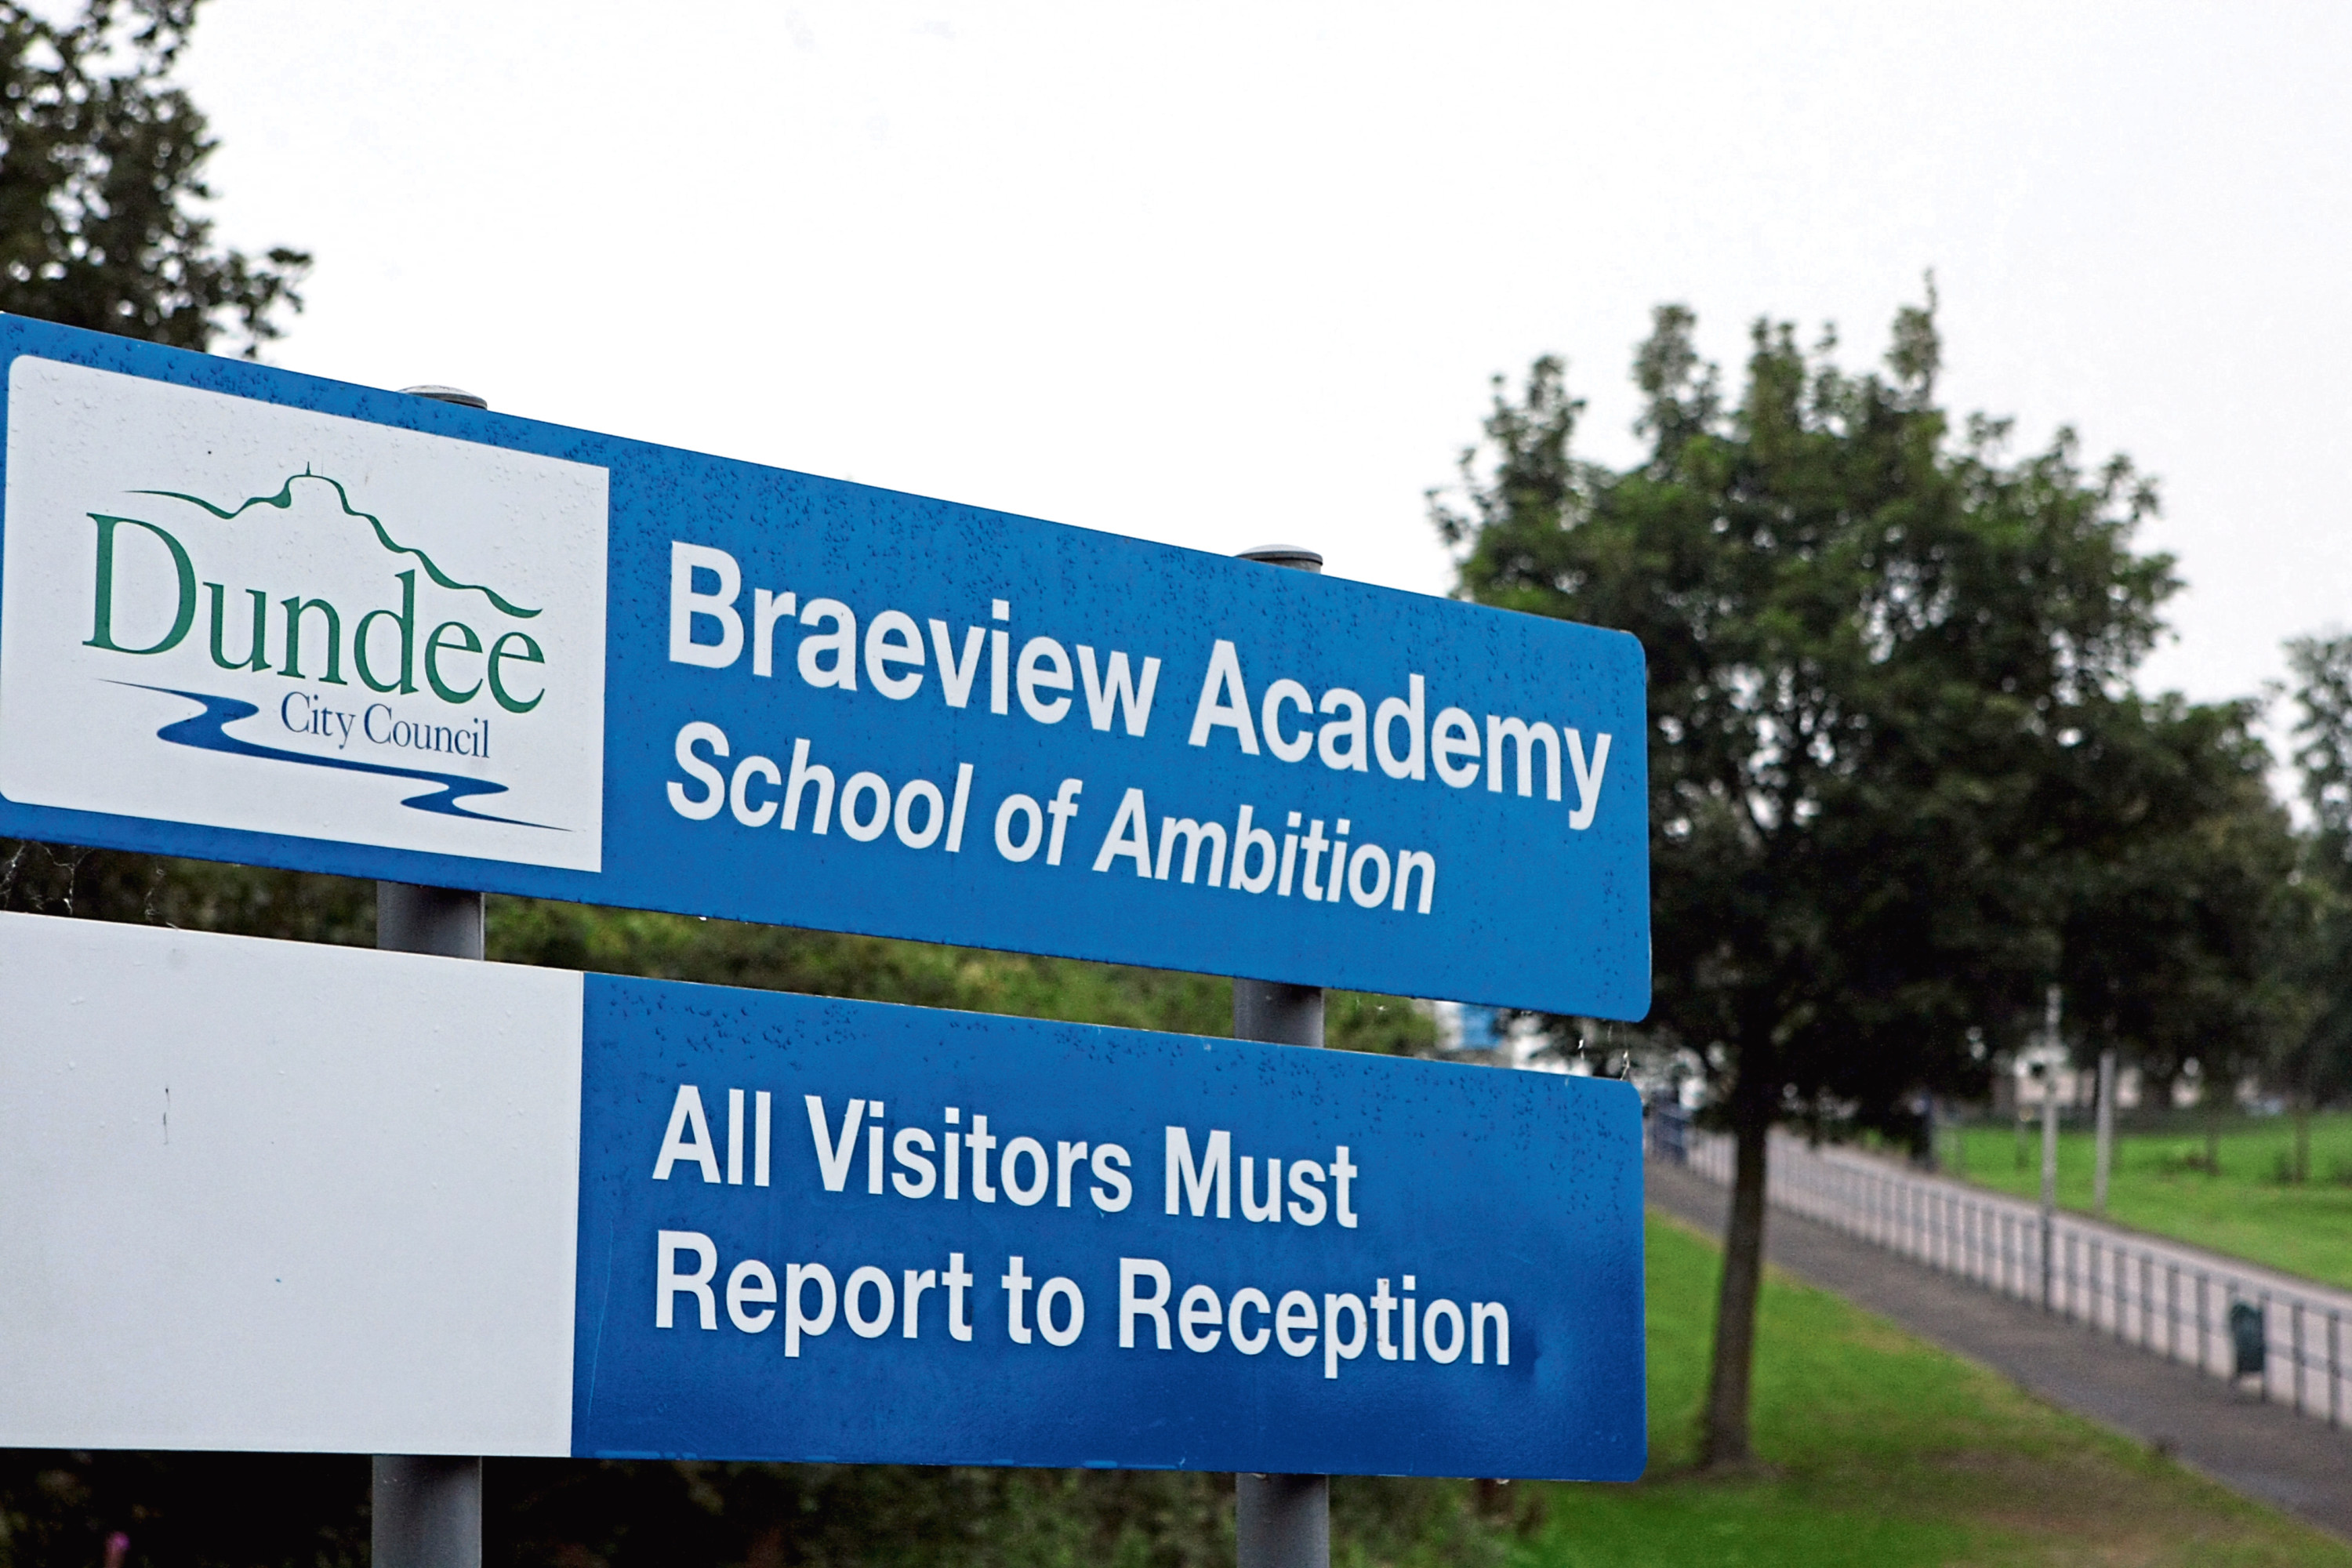 Braeview Academy.